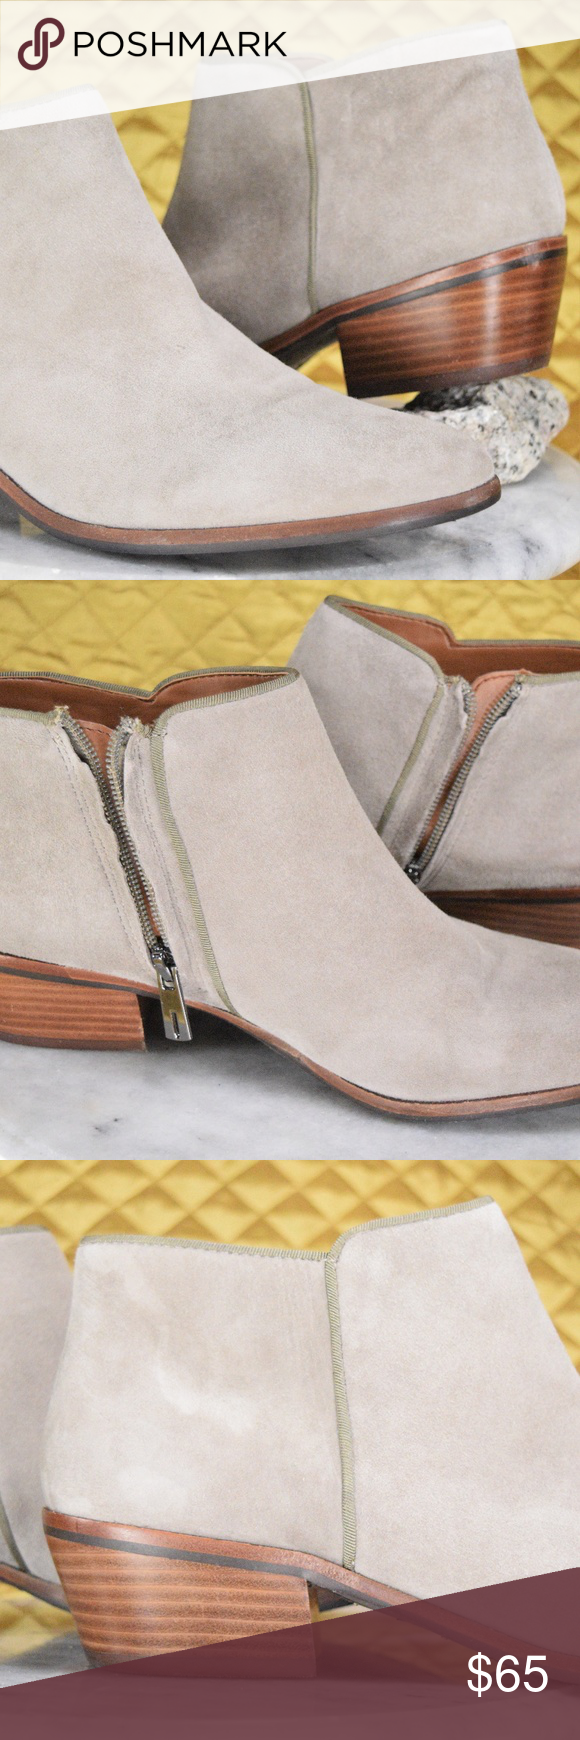 830828078 Sam Edelman Petty Chelsea Boots Women s Sz 9M NEW These beautiful zip up  booties by Sam